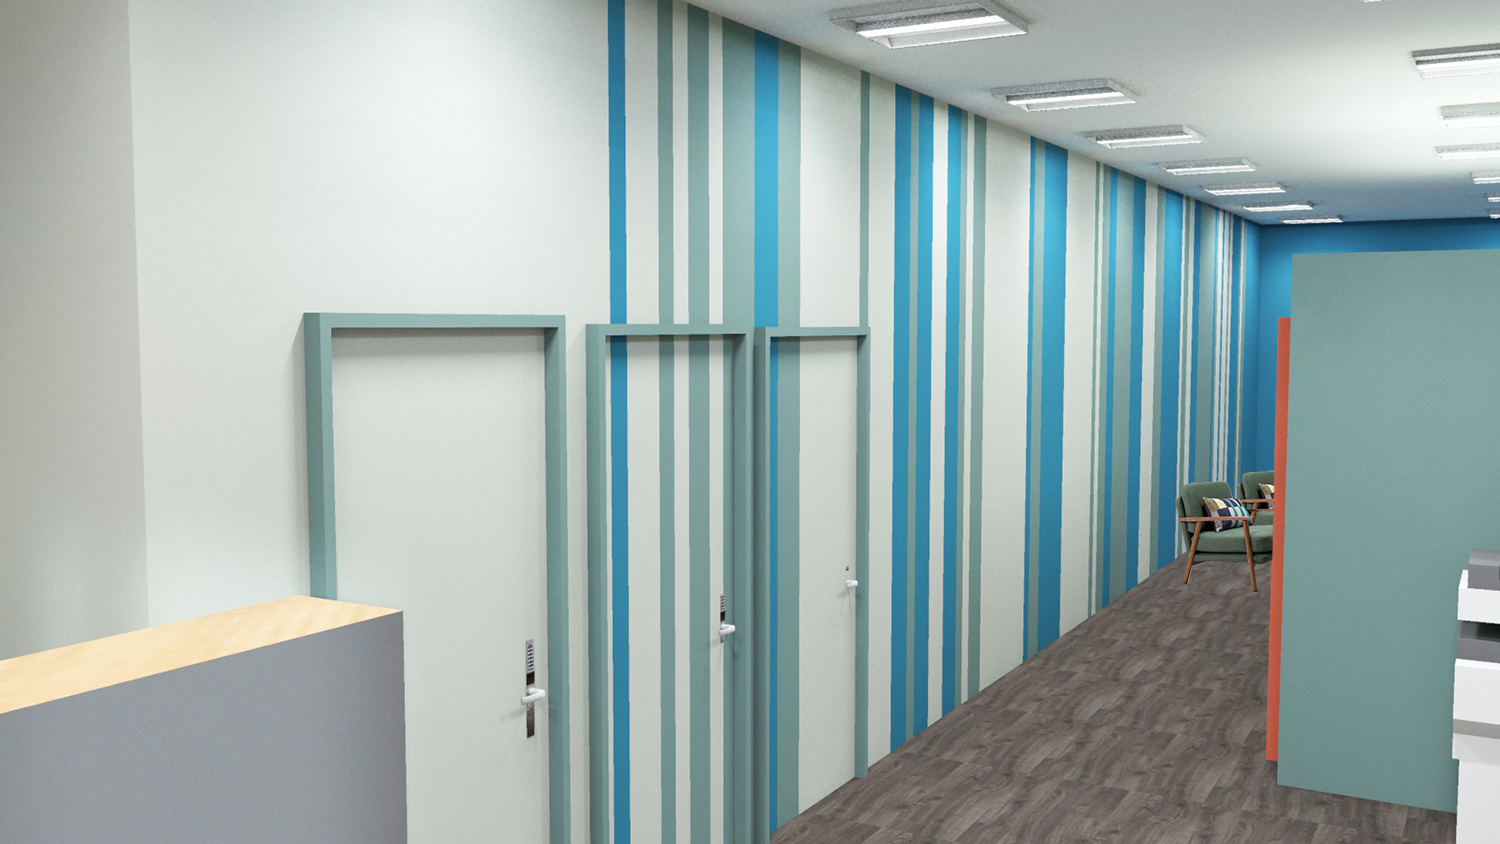 A computer generated image of the striped wall leading to the reception area.